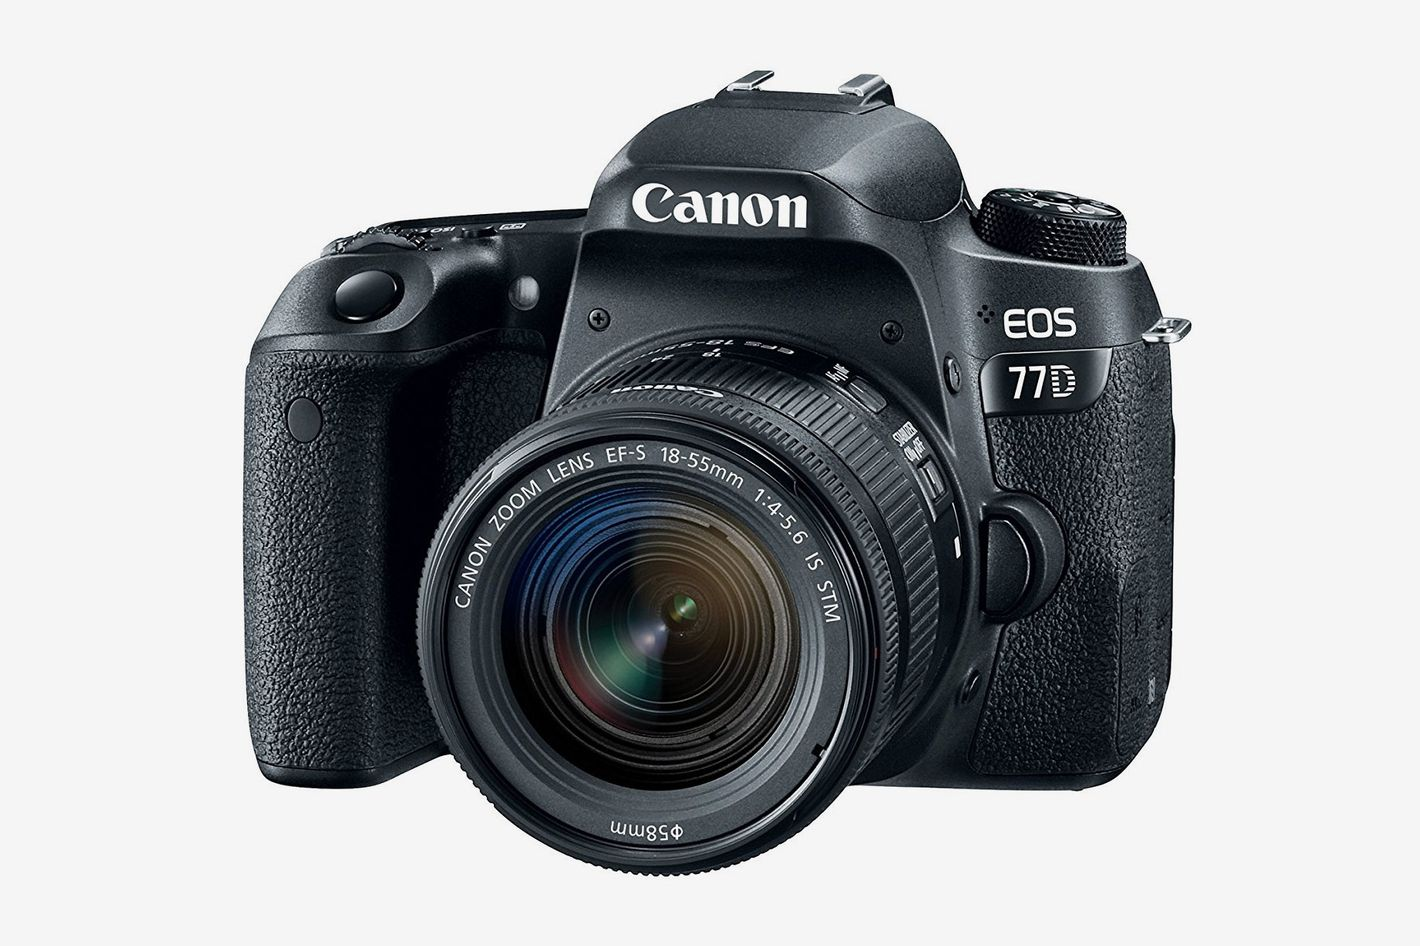 Canon EOS 77D With 18-55 mm lens